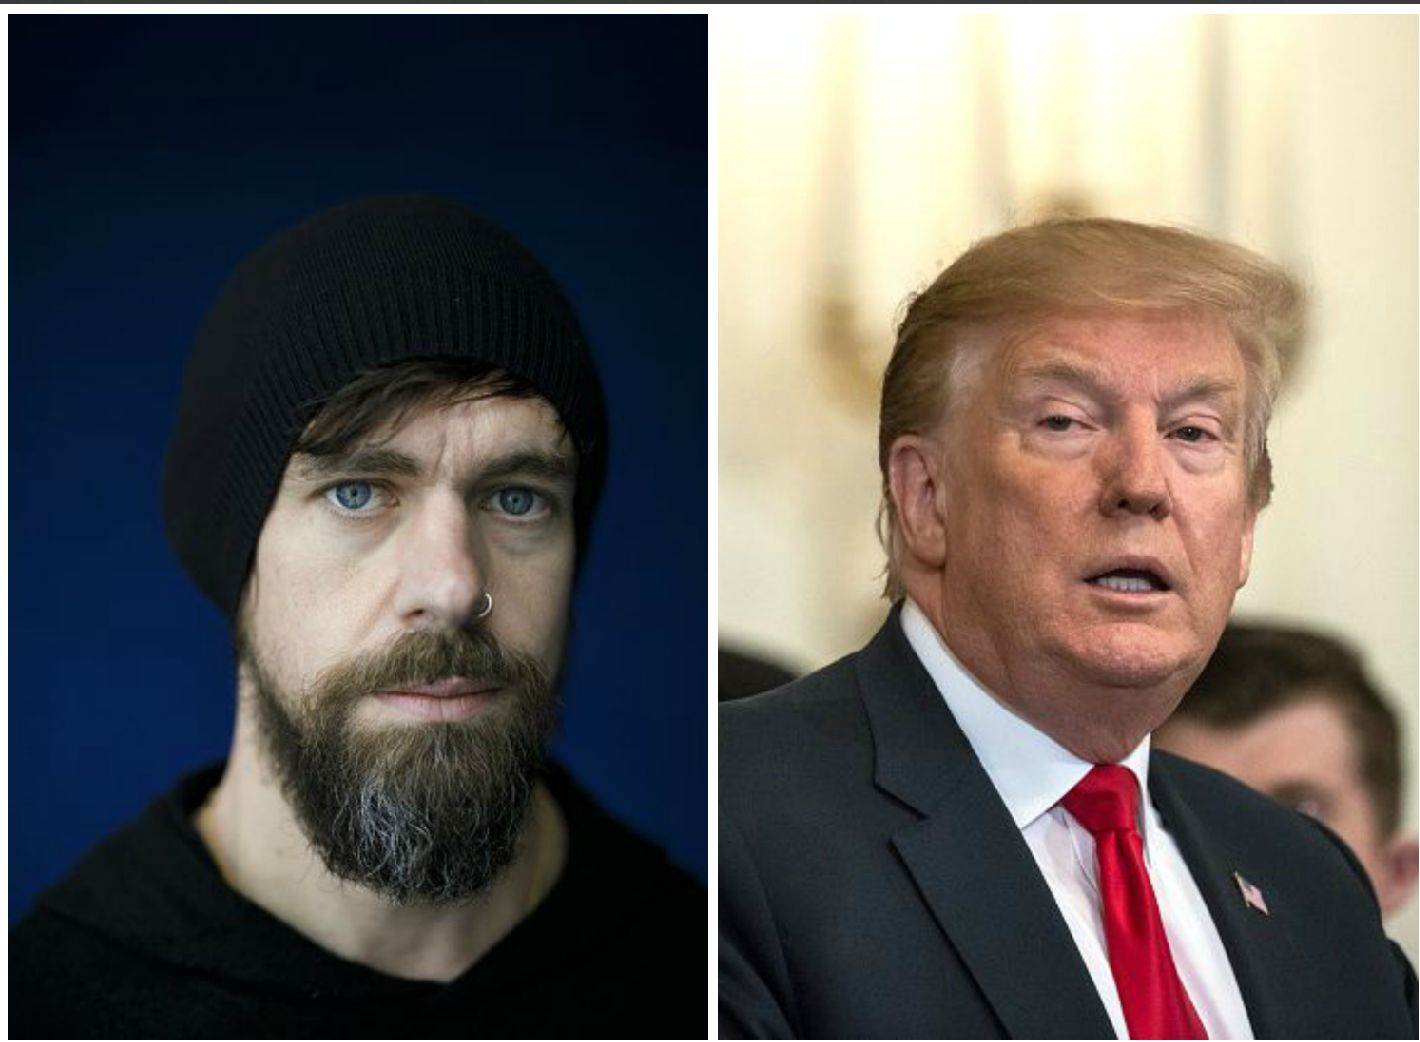 Trump Had Closed-Door Meeting With Twitter's Jack Dorsey, White House Confirms